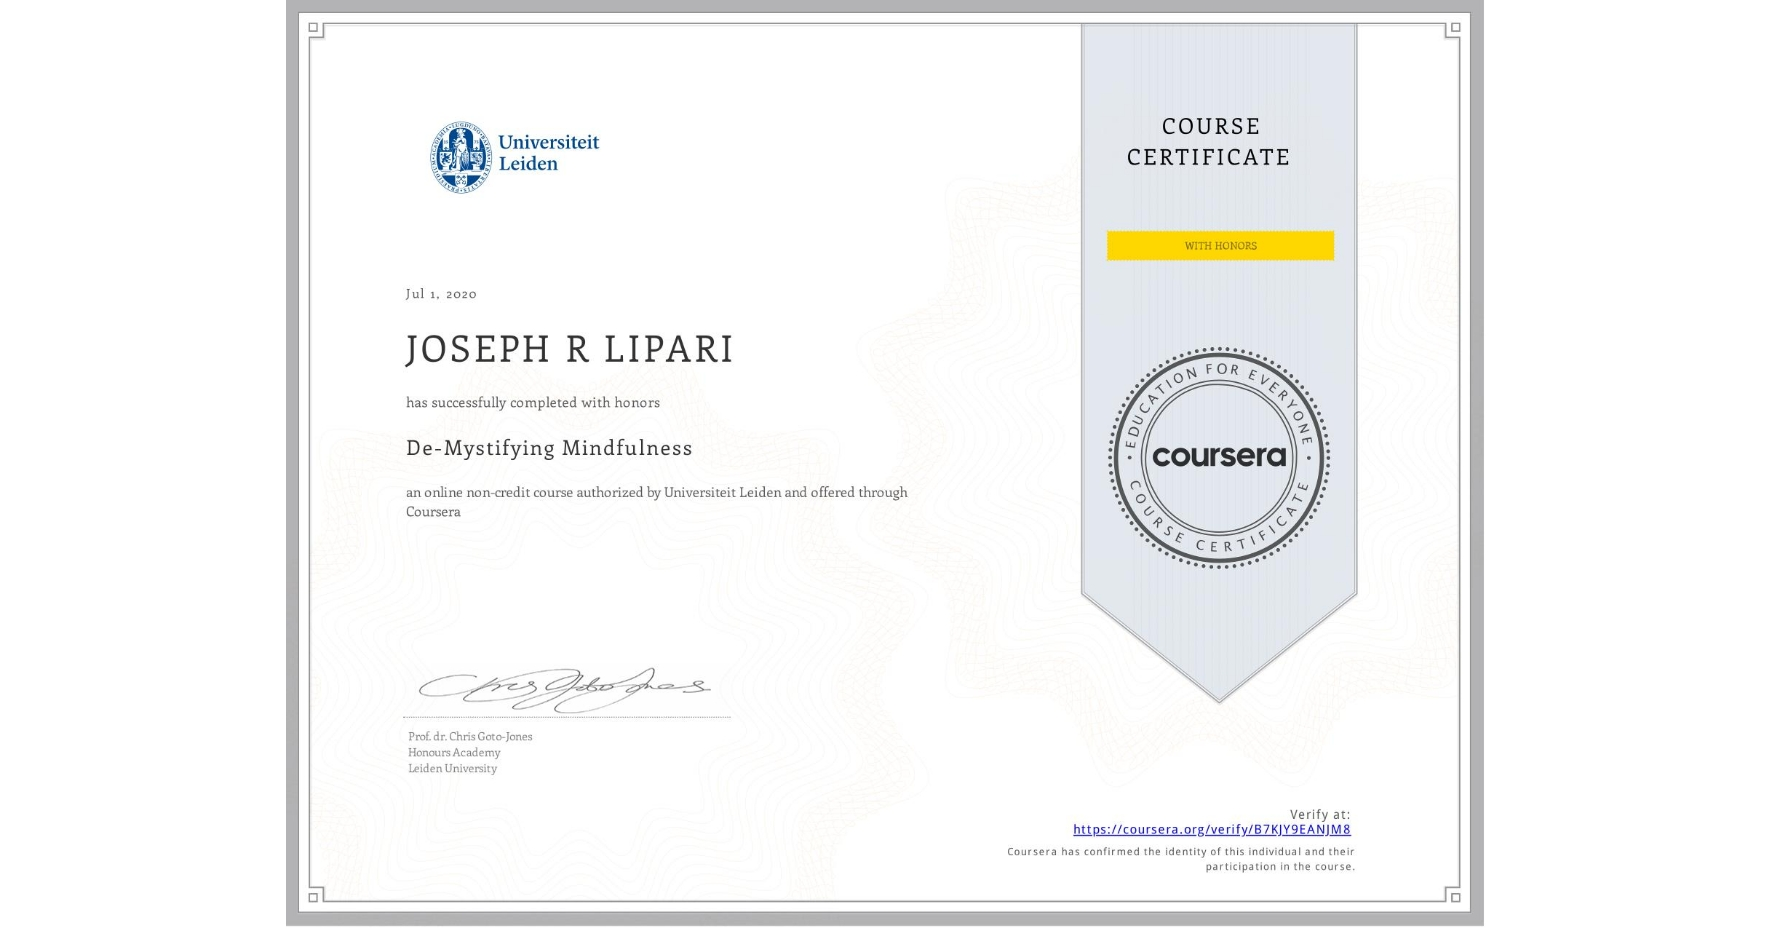 View certificate for JOSEPH R  LIPARI, De-Mystifying Mindfulness, an online non-credit course authorized by Universiteit Leiden and offered through Coursera